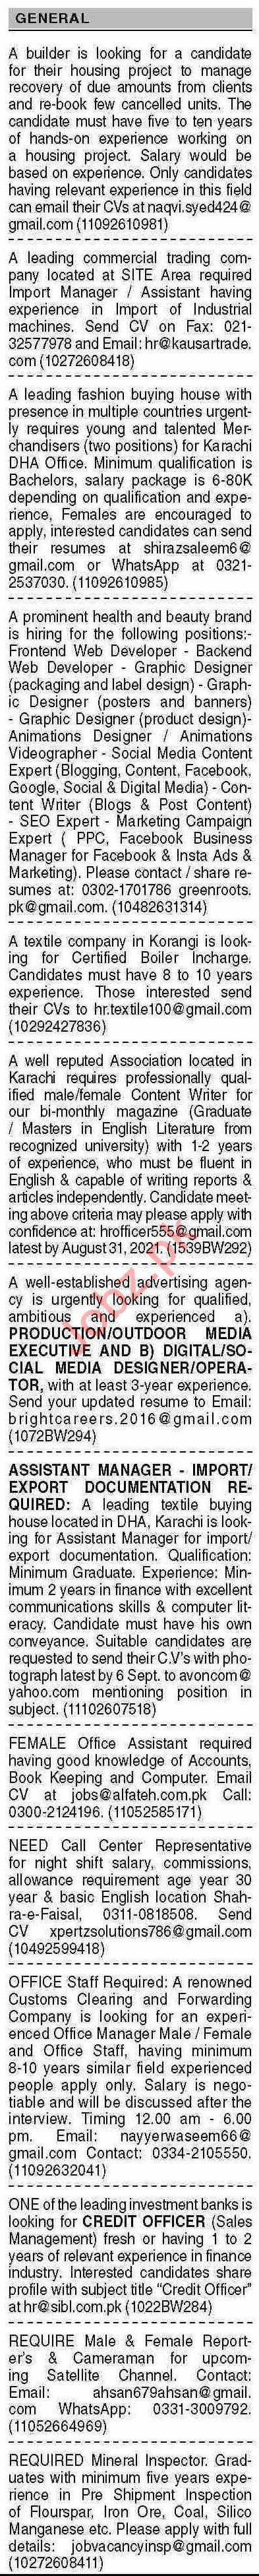 Dawn Sunday Classified Ads 5th Sep 2021 for General Staff